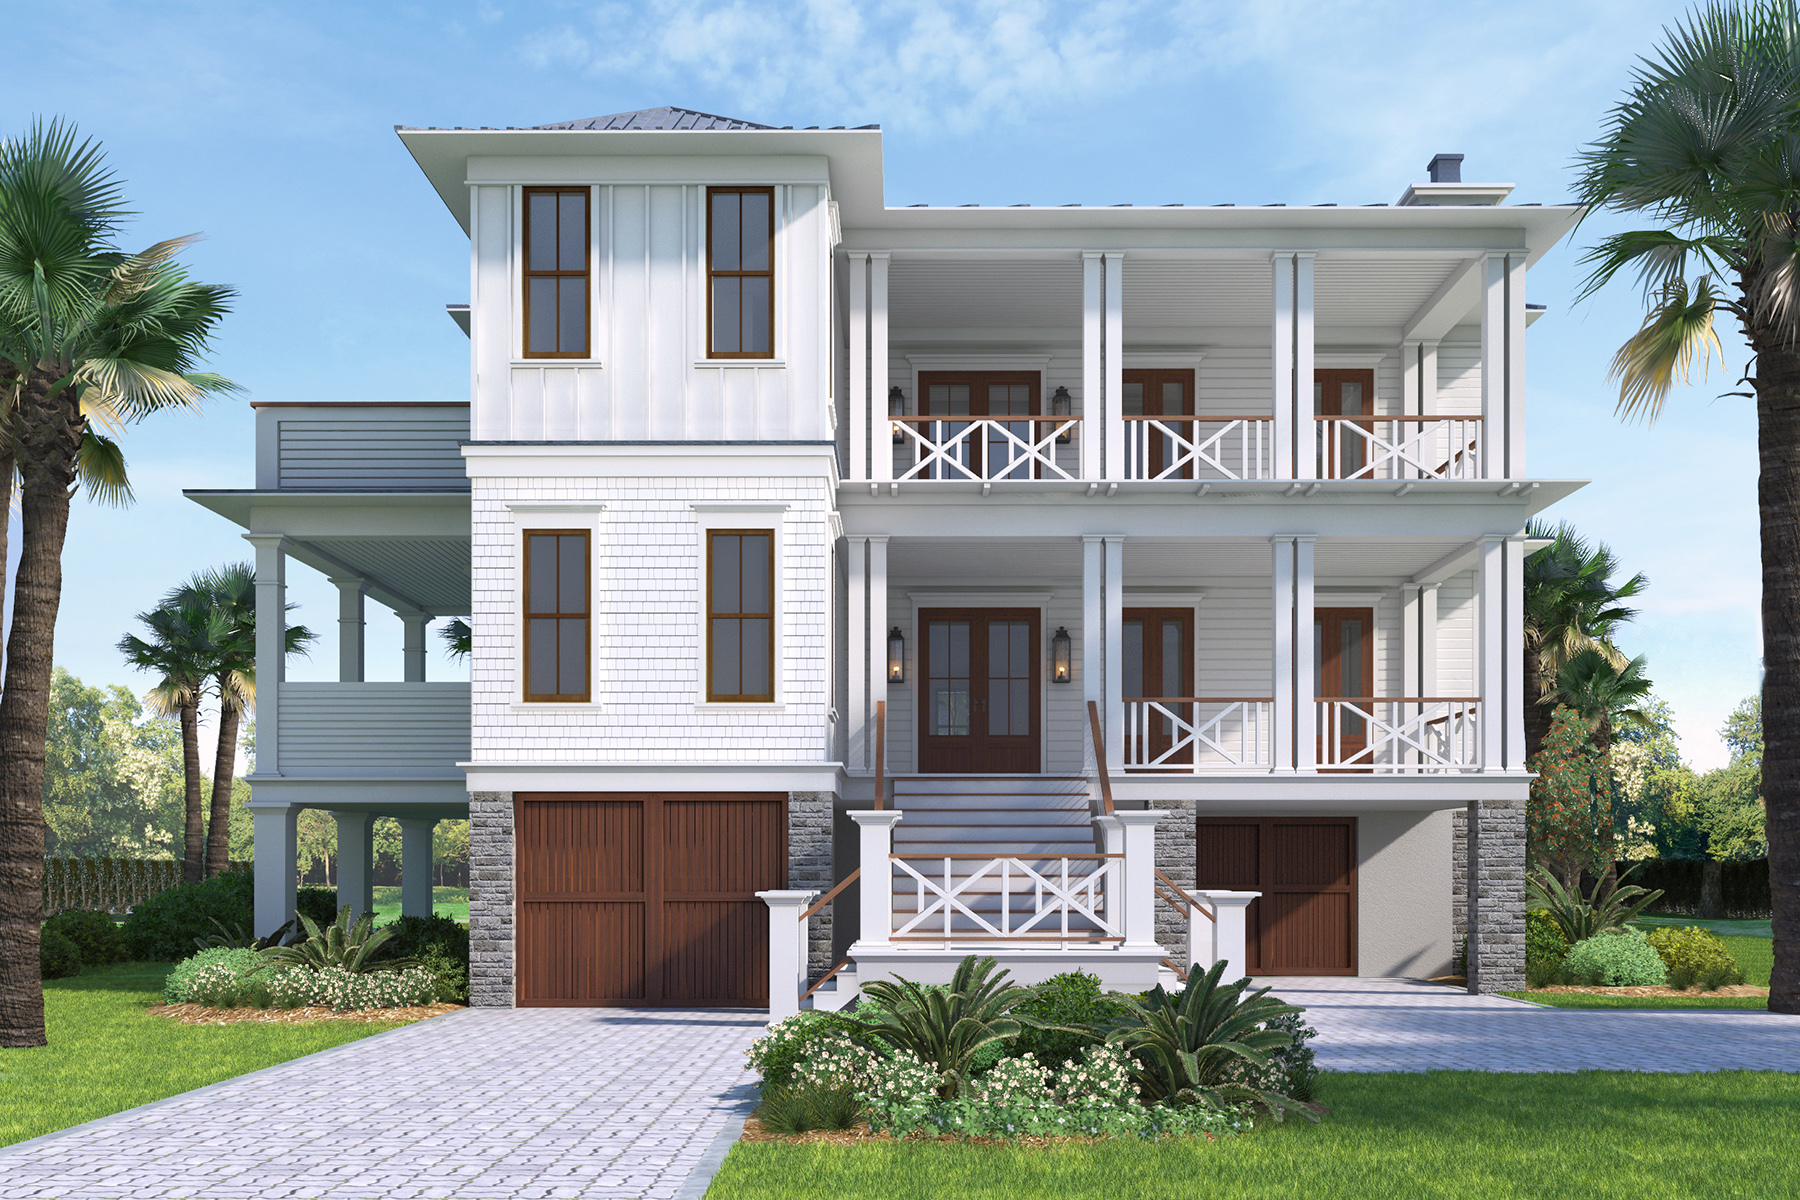 Villa per Vendita alle ore Entertainer's Dream Home on Sullivans Island 1311 Cove Avenue Sullivans Island, Carolina Del Sud, 29482 Stati Uniti